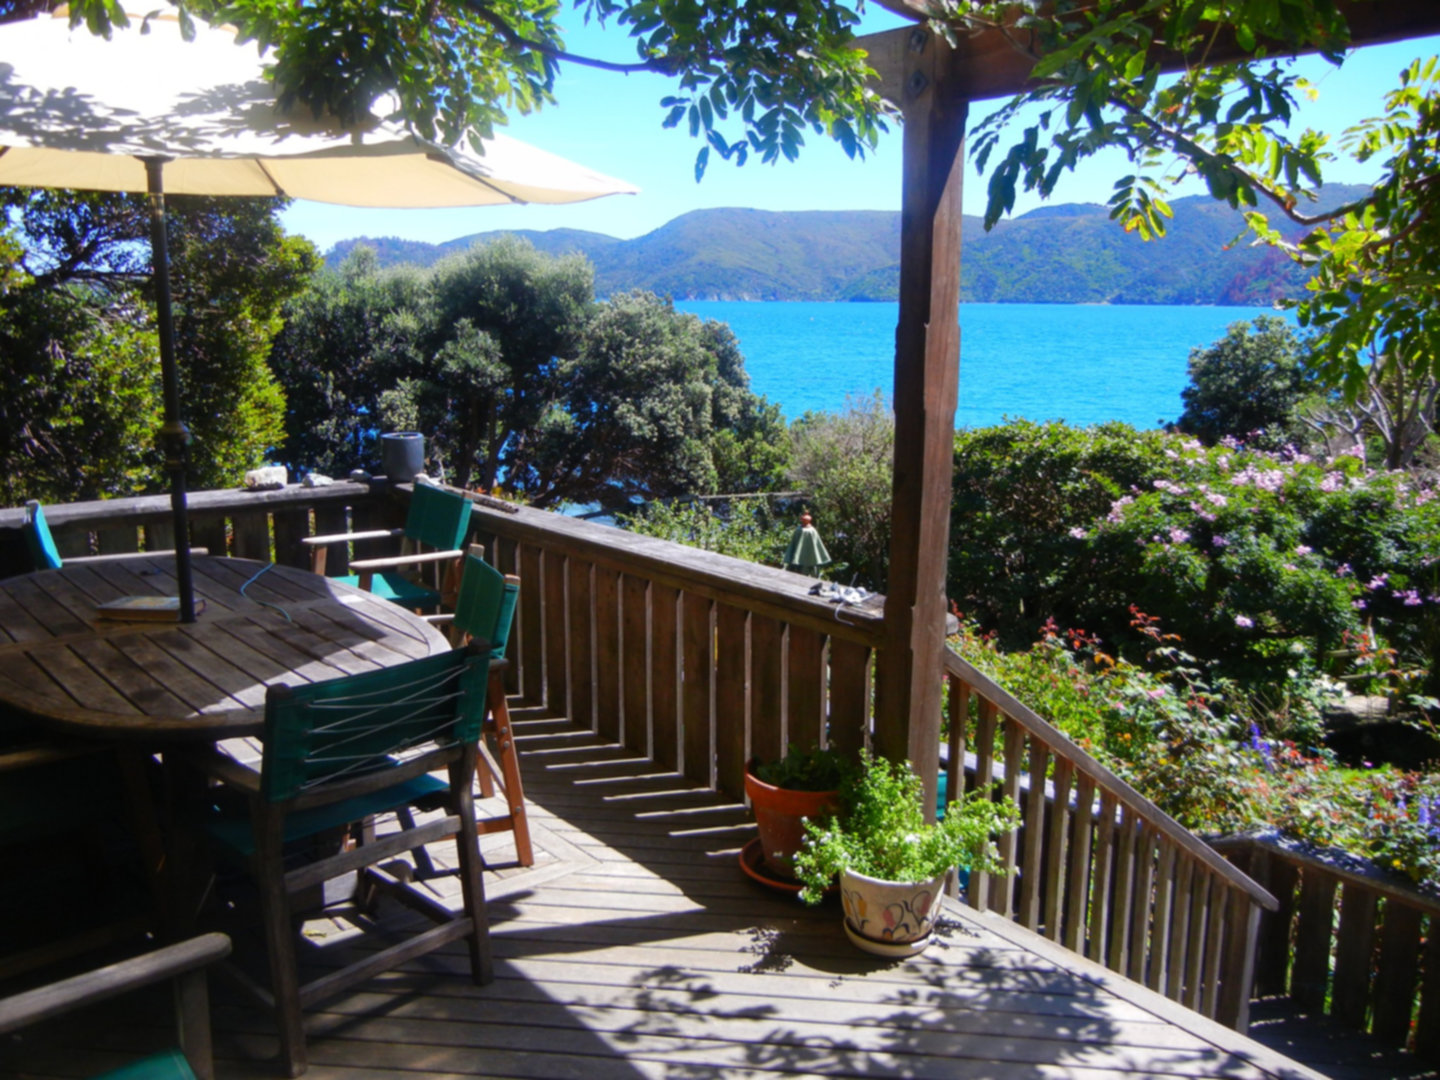 An umbrella sitting on top of a wooden table at Ngaio Bay.